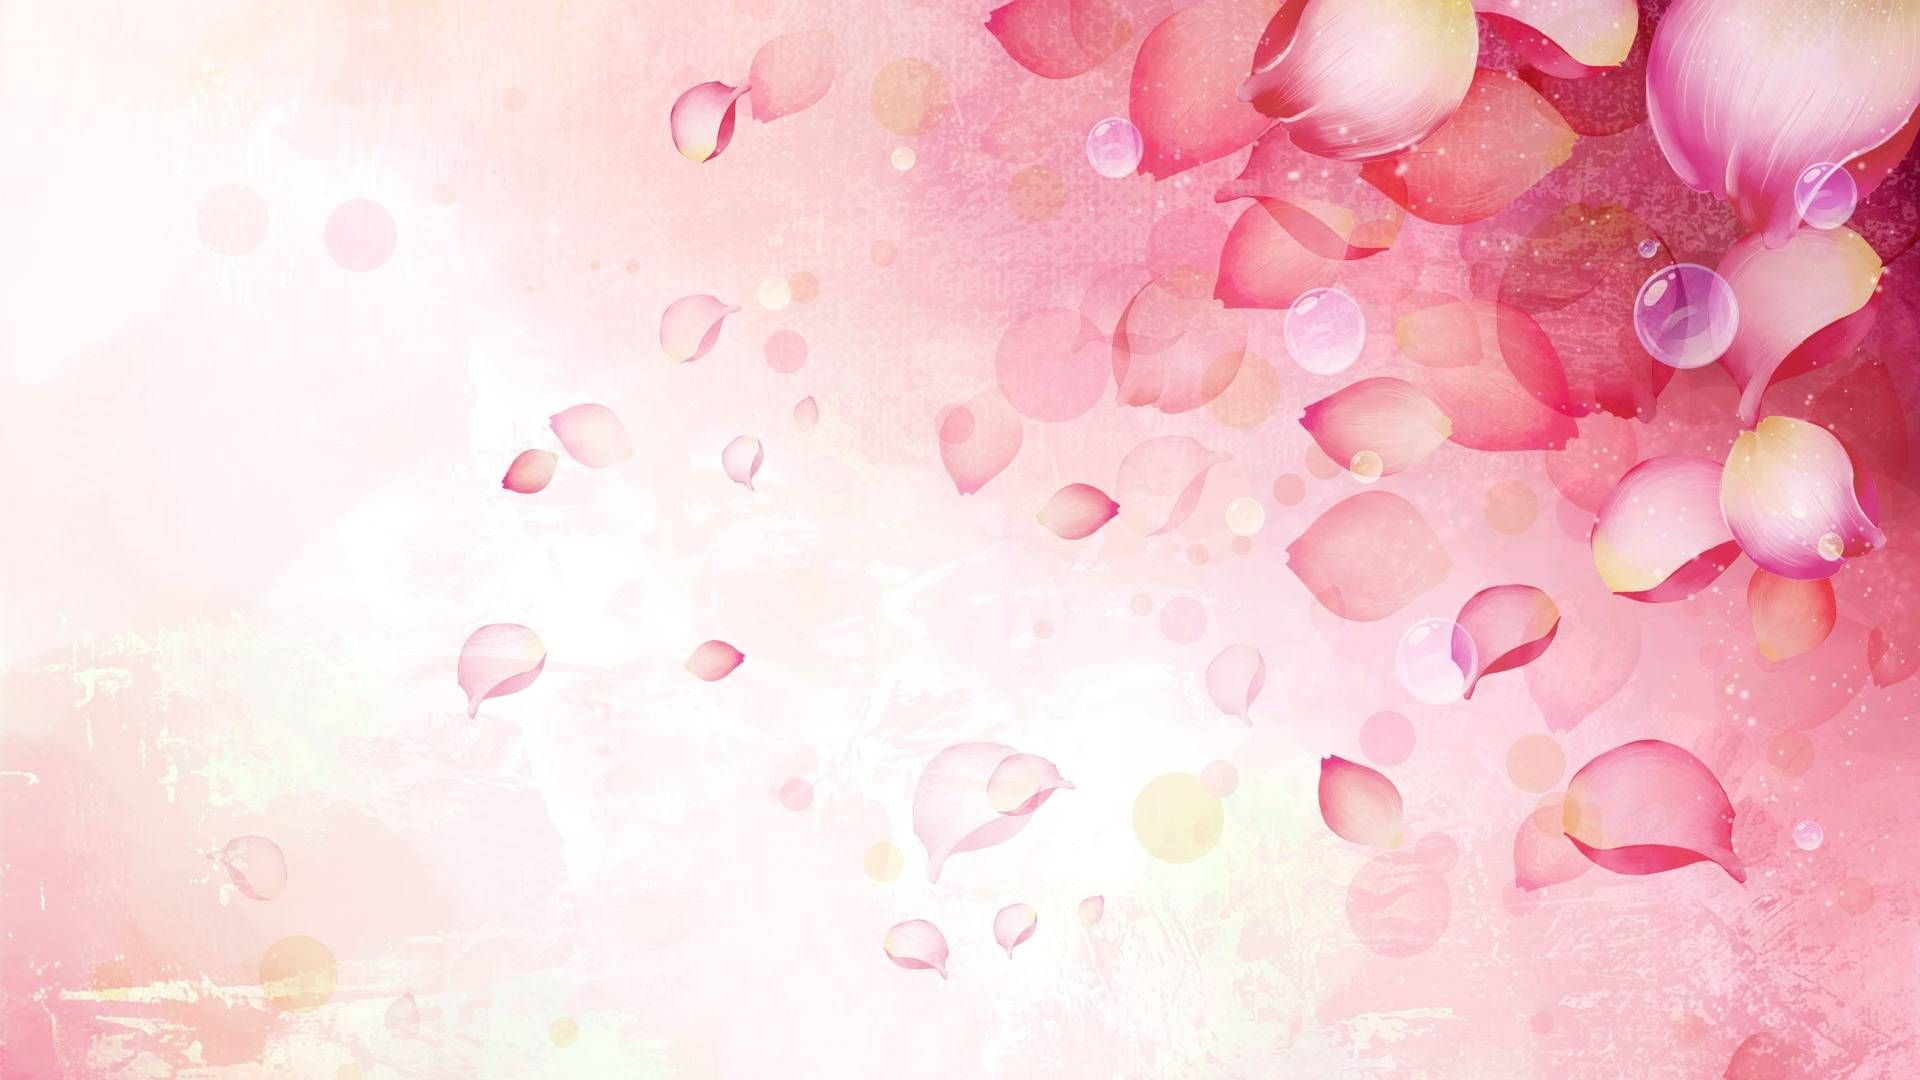 Pink Flower Designs Backgrounds Is Cool Wallpapers A Pinterest